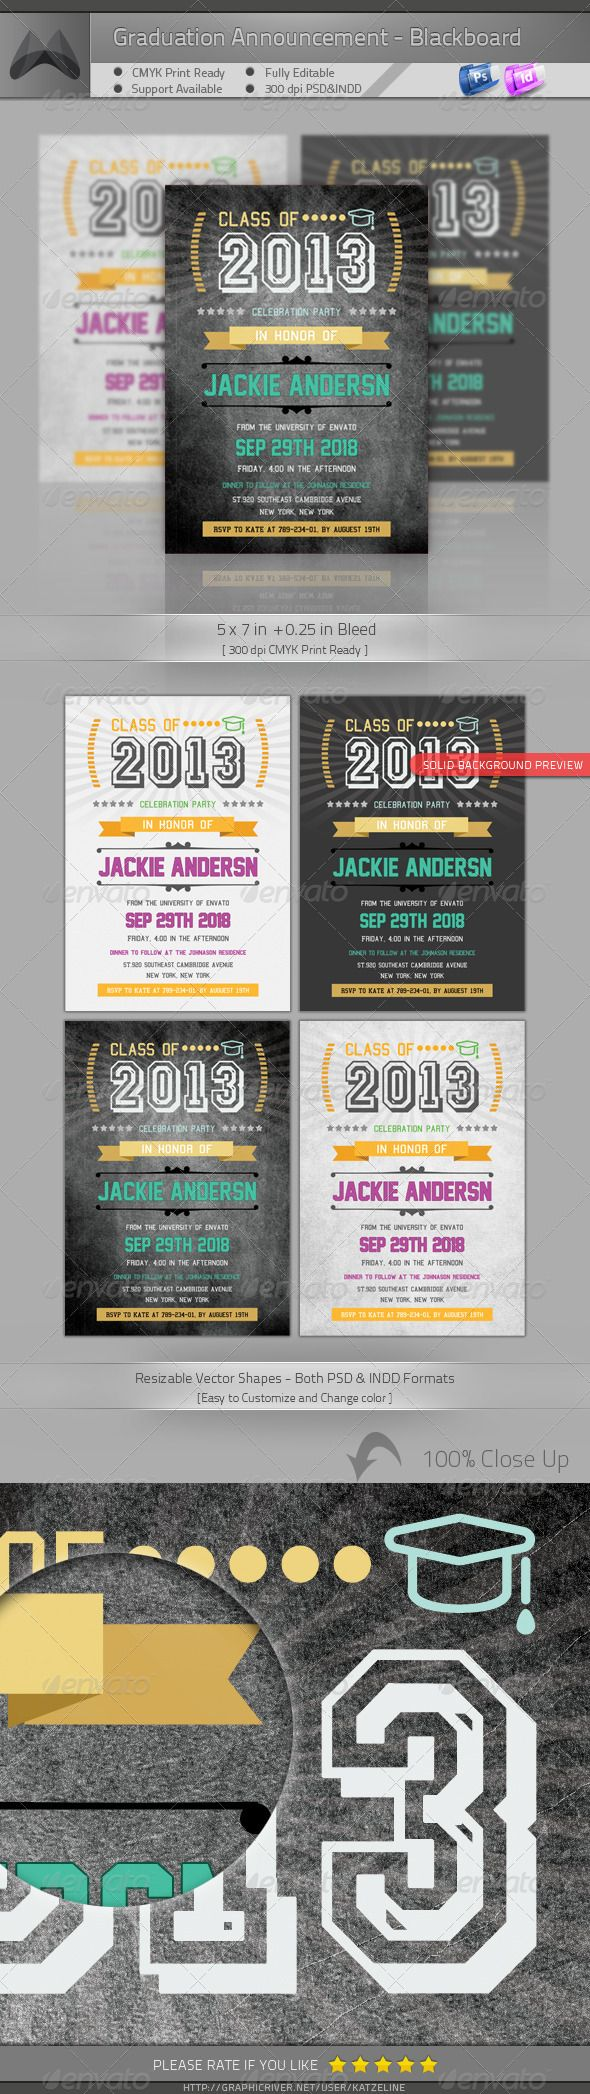 Graduation Announcement  Invitation - Blackboard